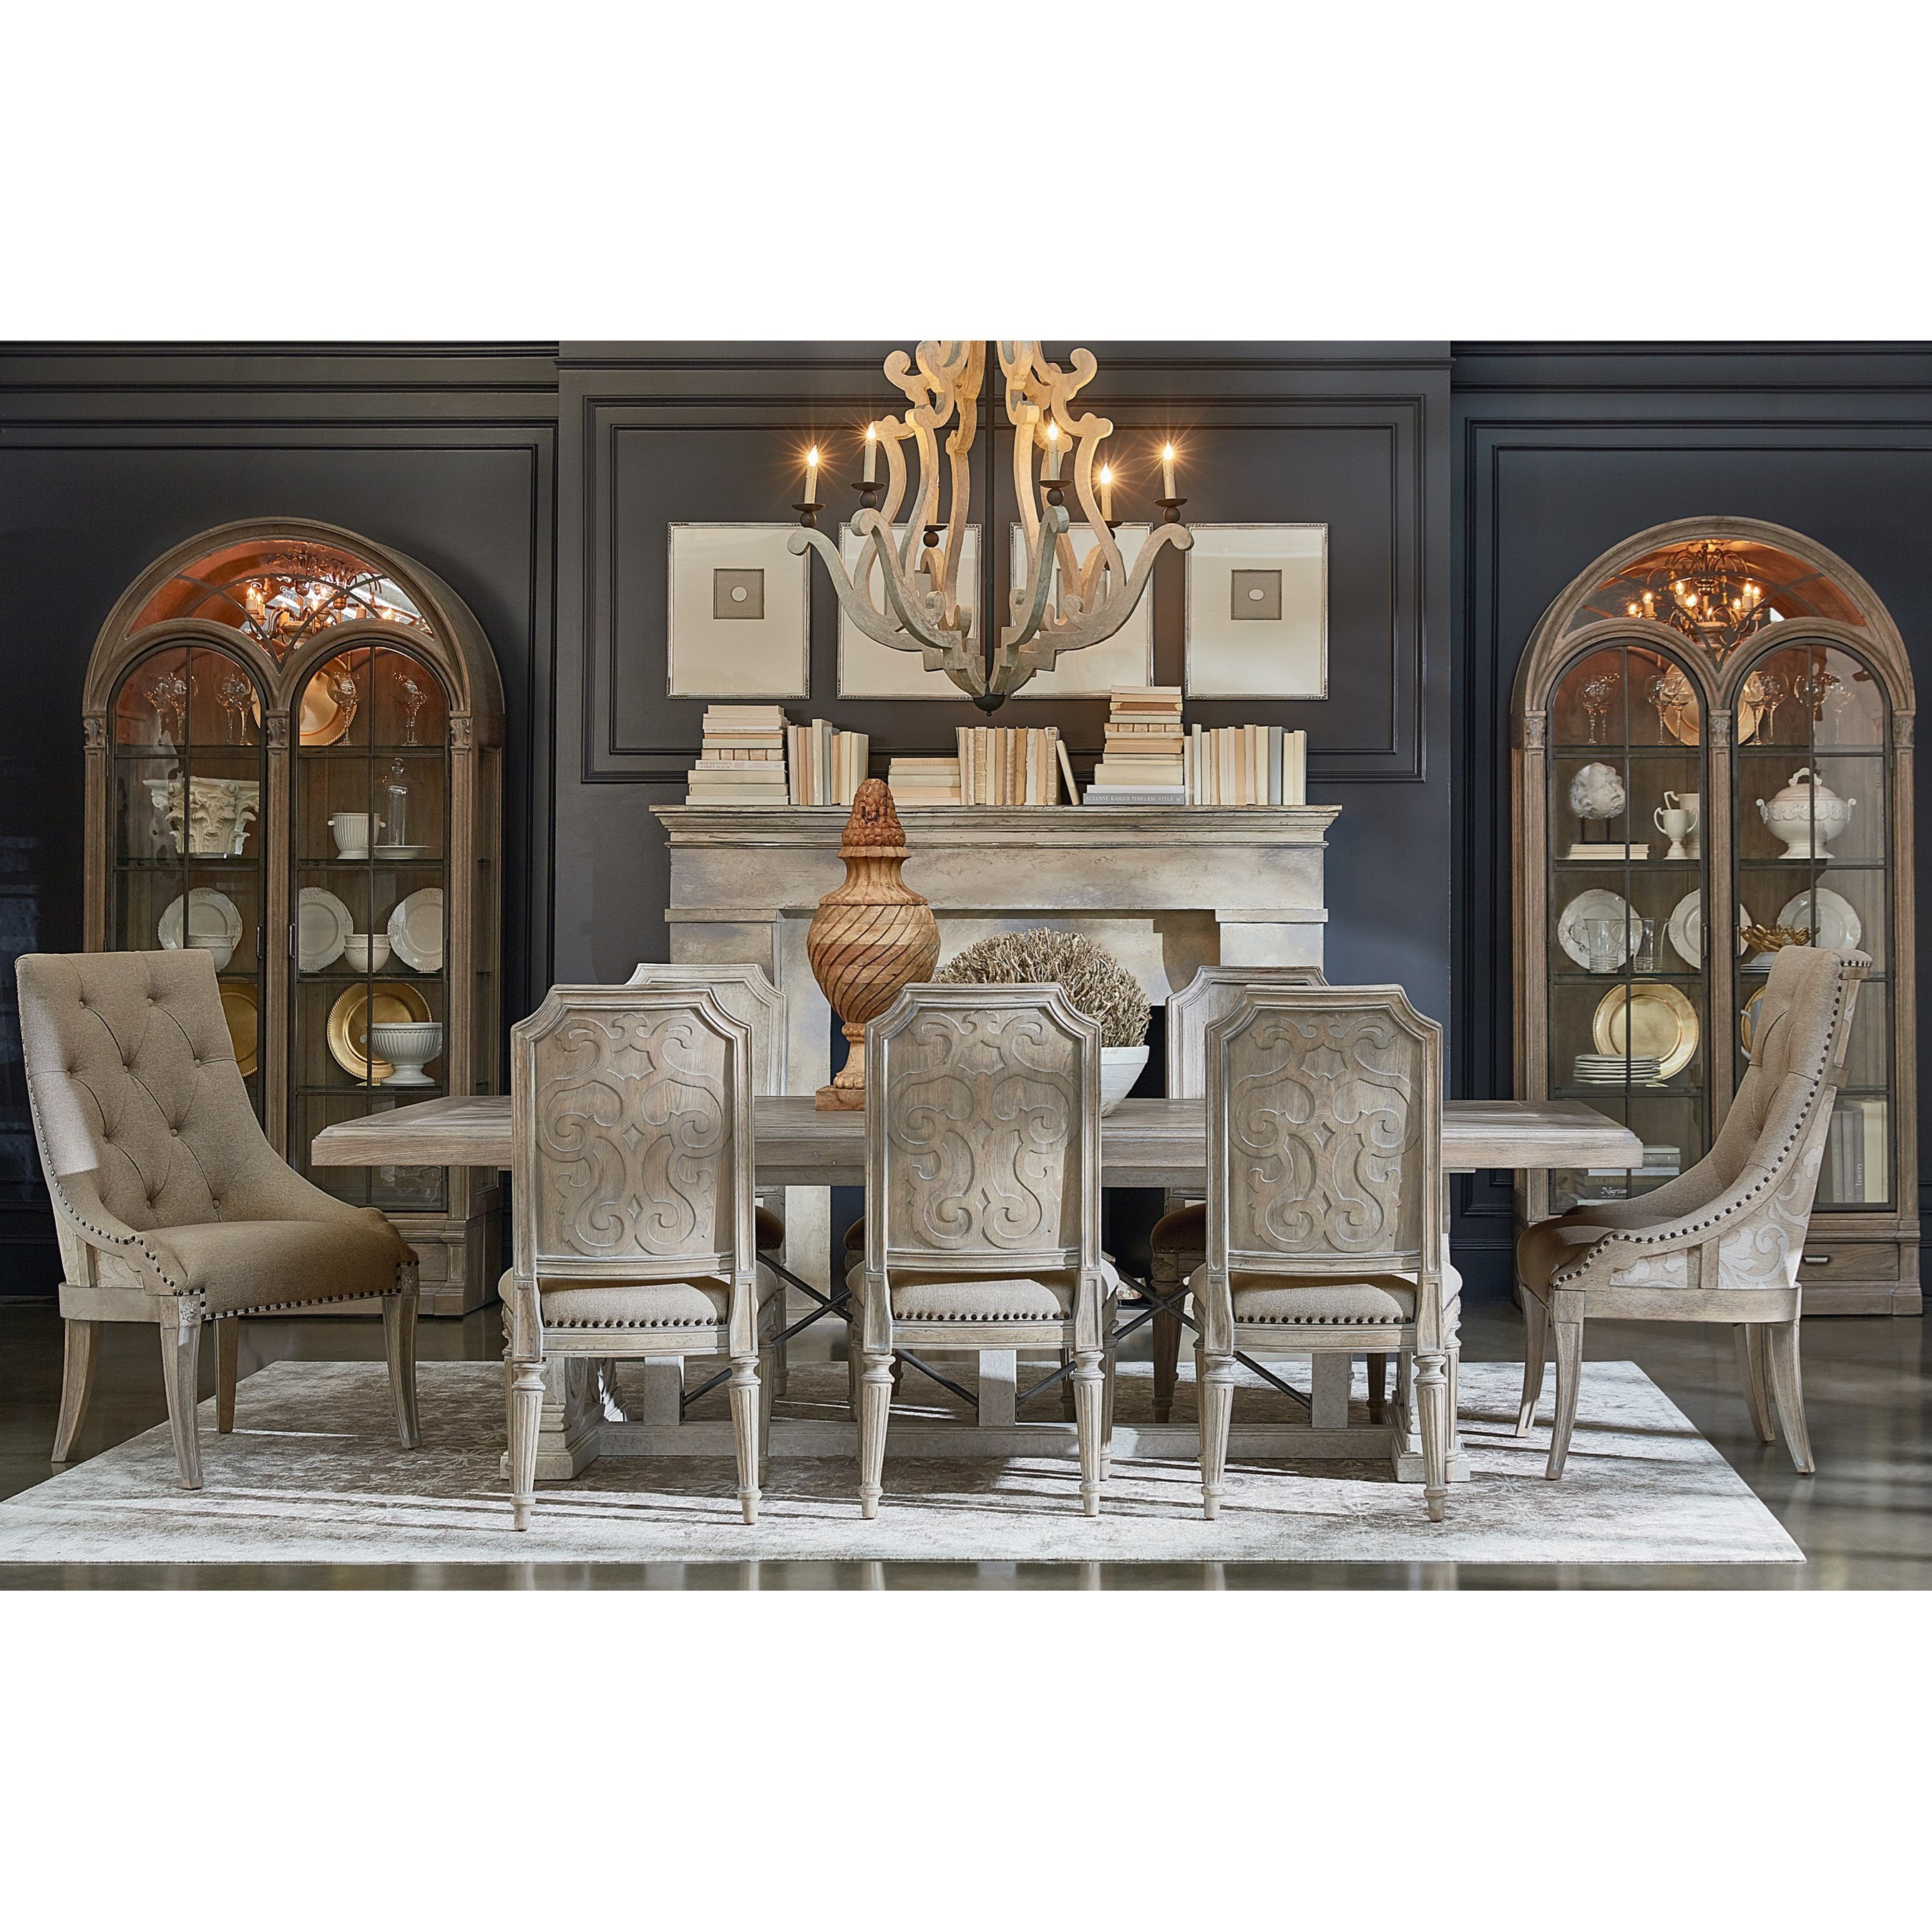 Arch Salvage Formal Dining Room Group by A.R.T. Furniture Inc at Baer's Furniture